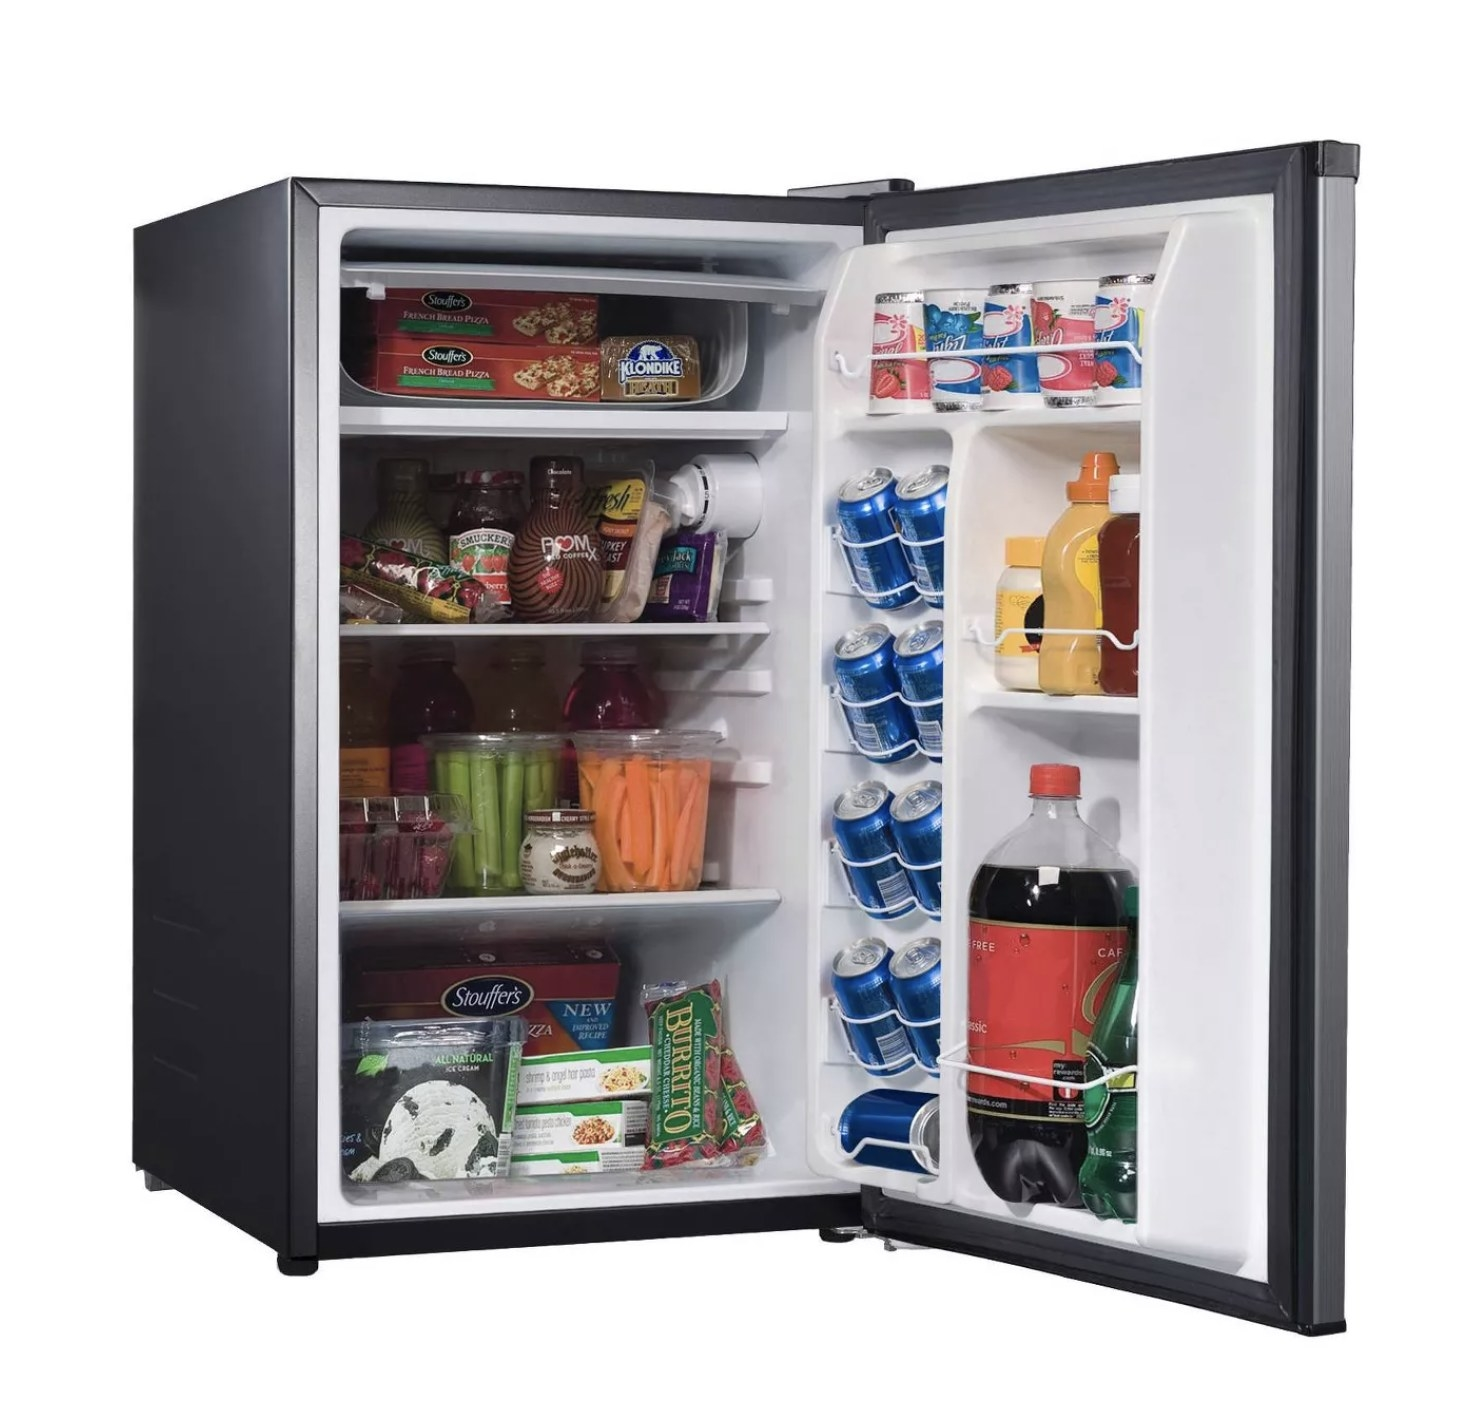 The black mini-fridge